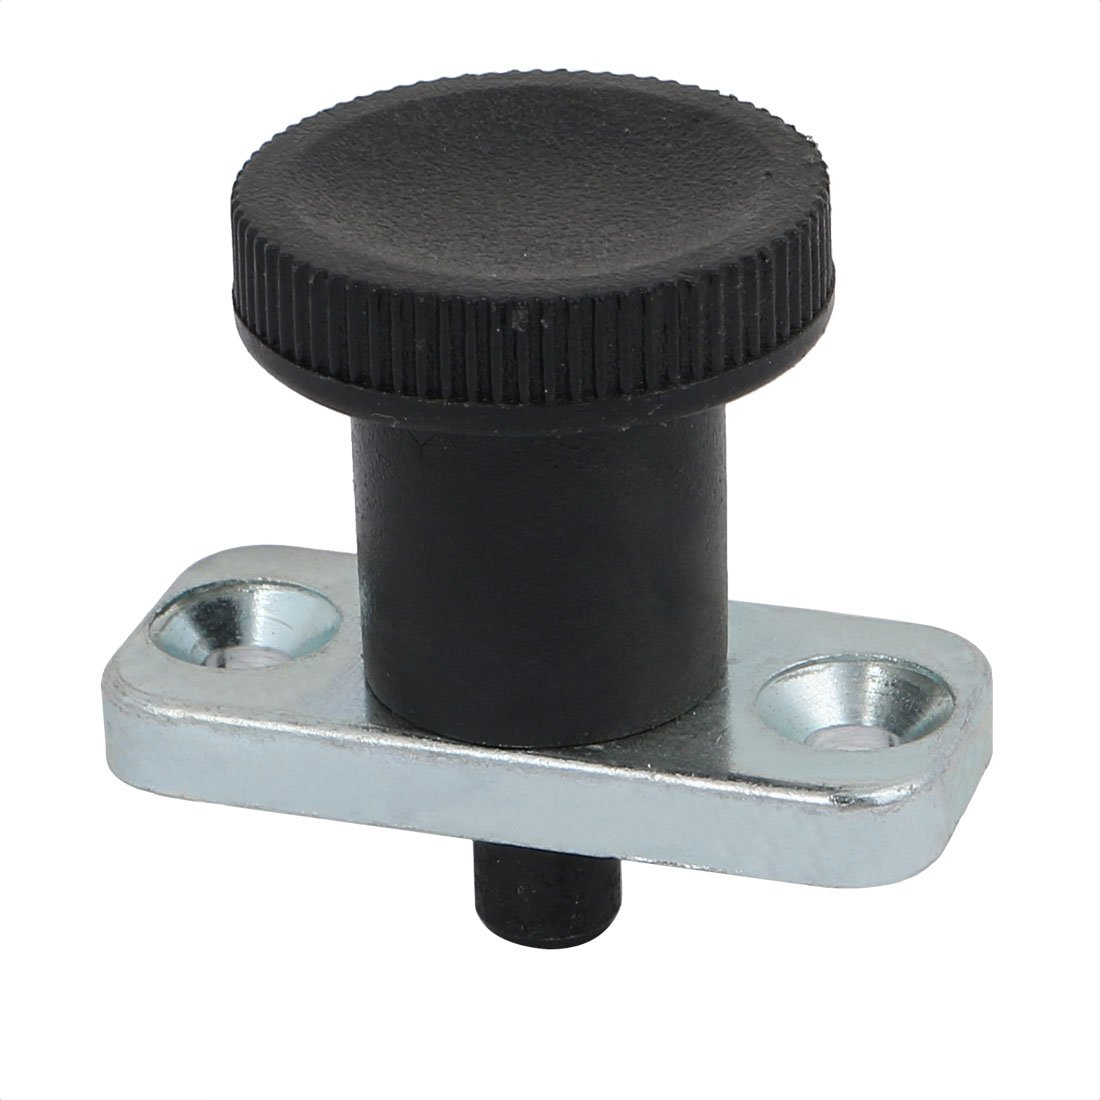 uxcell 8mm Pin Dia 8mm Pin Length Non Lock-Out Type Zinc Alloy Plate Mount Indexing Plunger